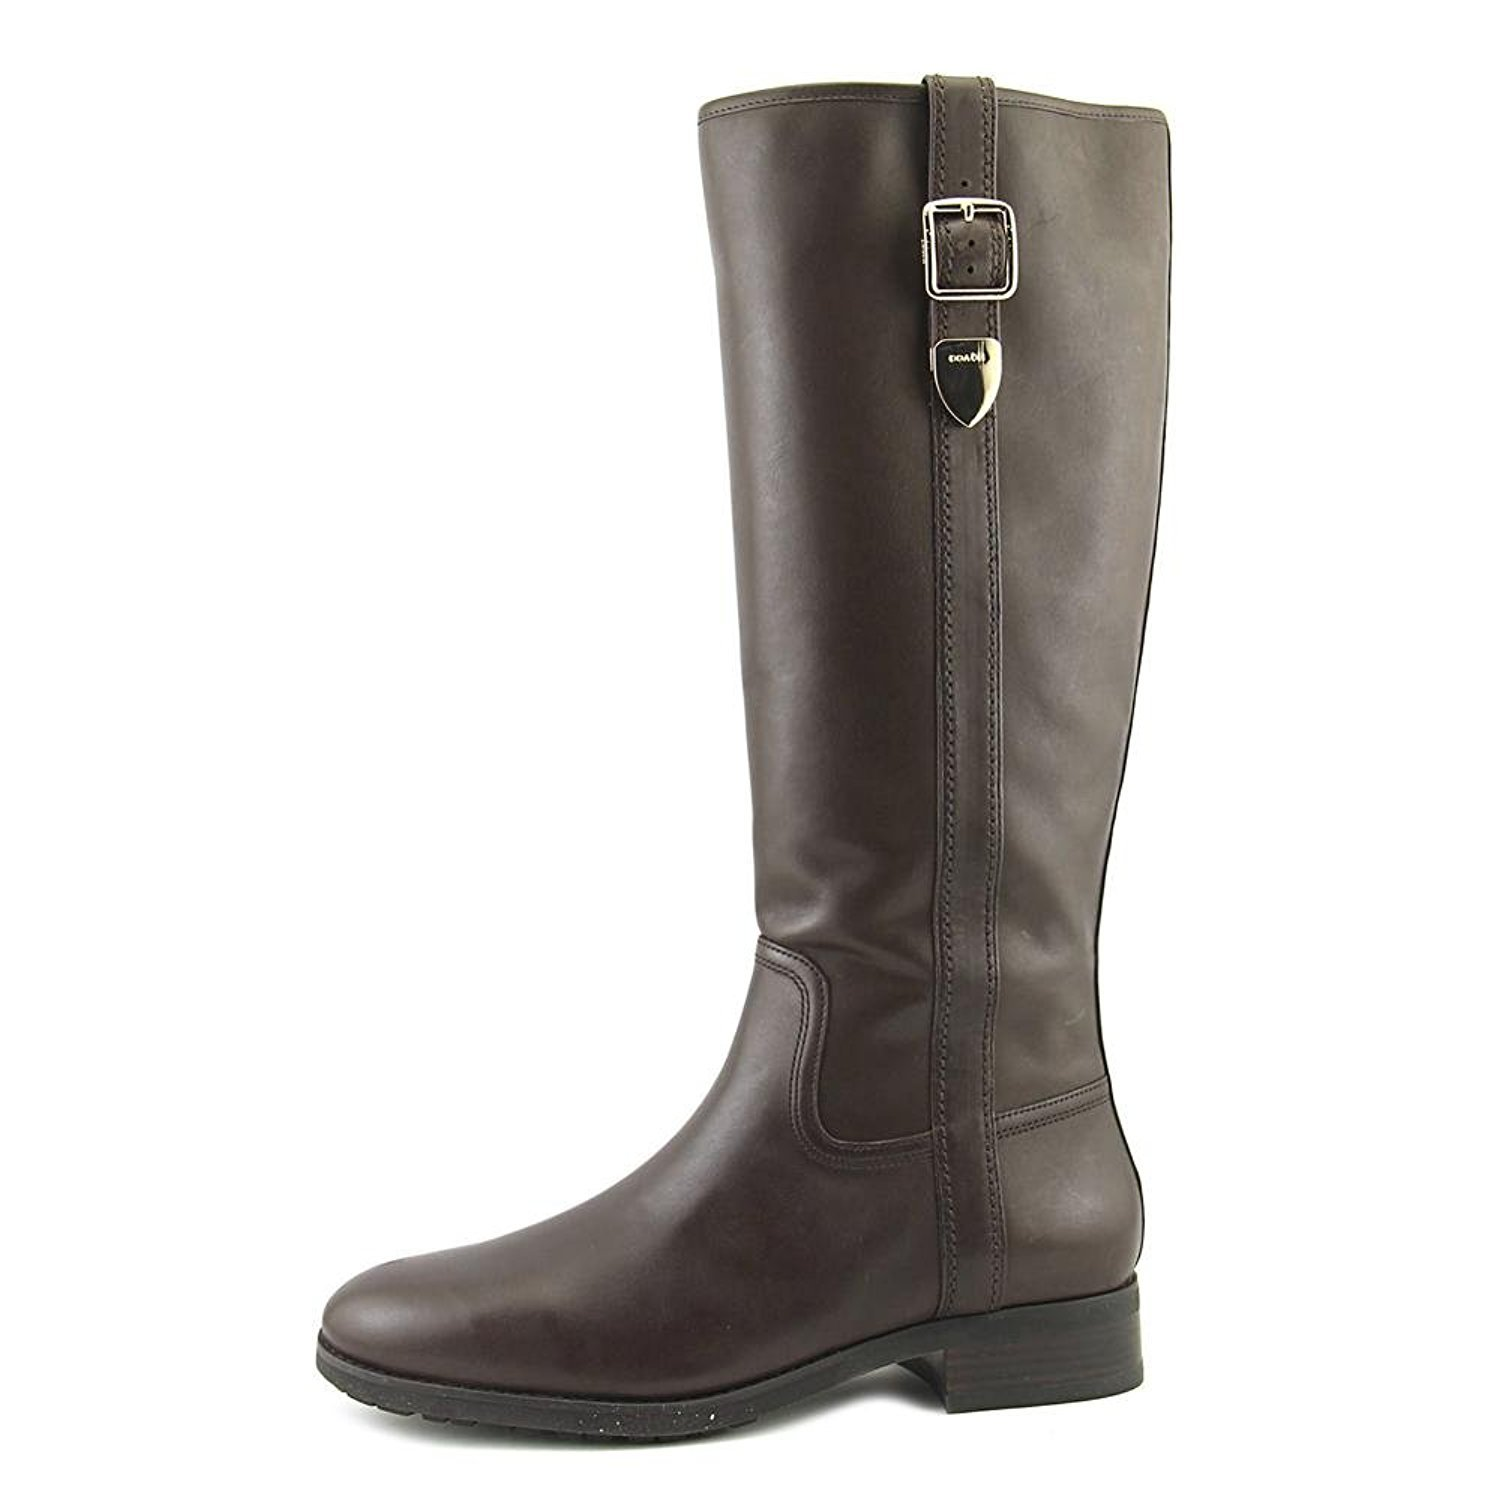 Coach Womens Easton Closed Toe Knee High Fashion Boots, Brown, Size 9.5